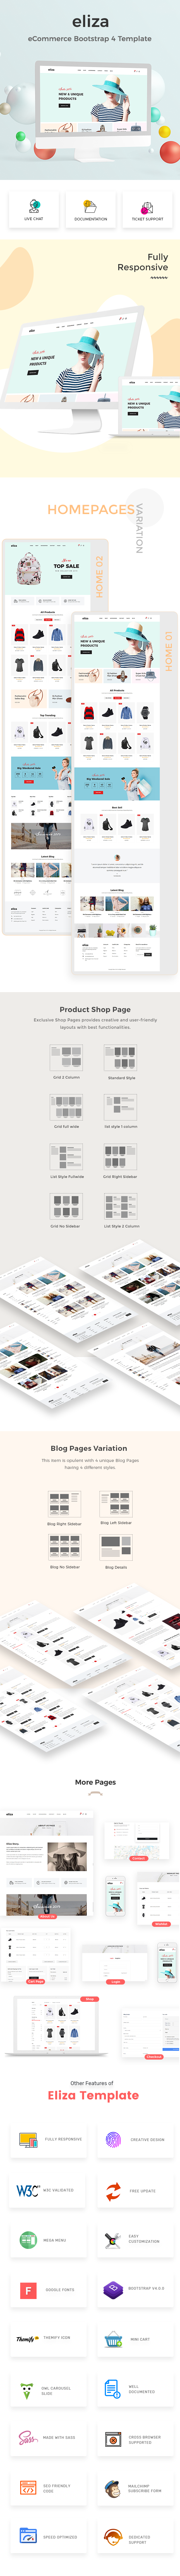 eliza - eCommerce Bootstrap 4 Template